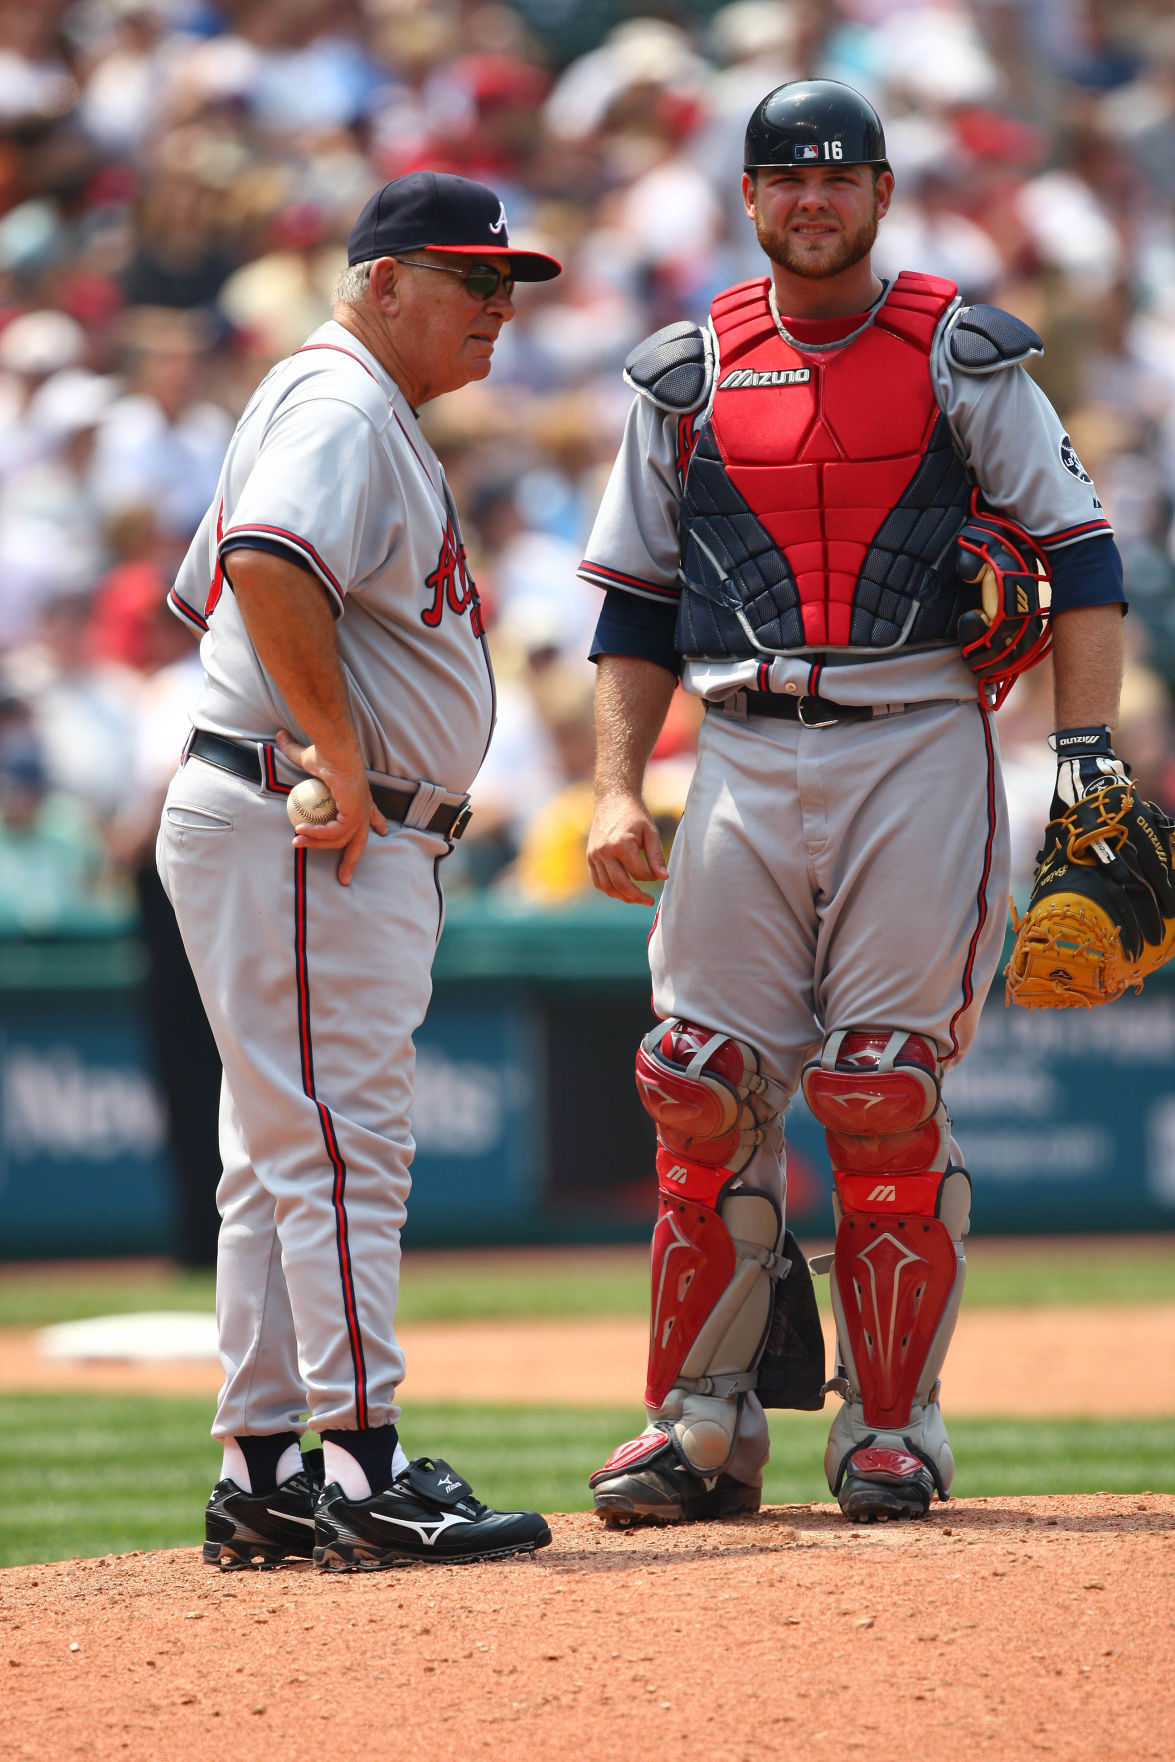 MLB: Atlanta Braves at Cleveland Indians